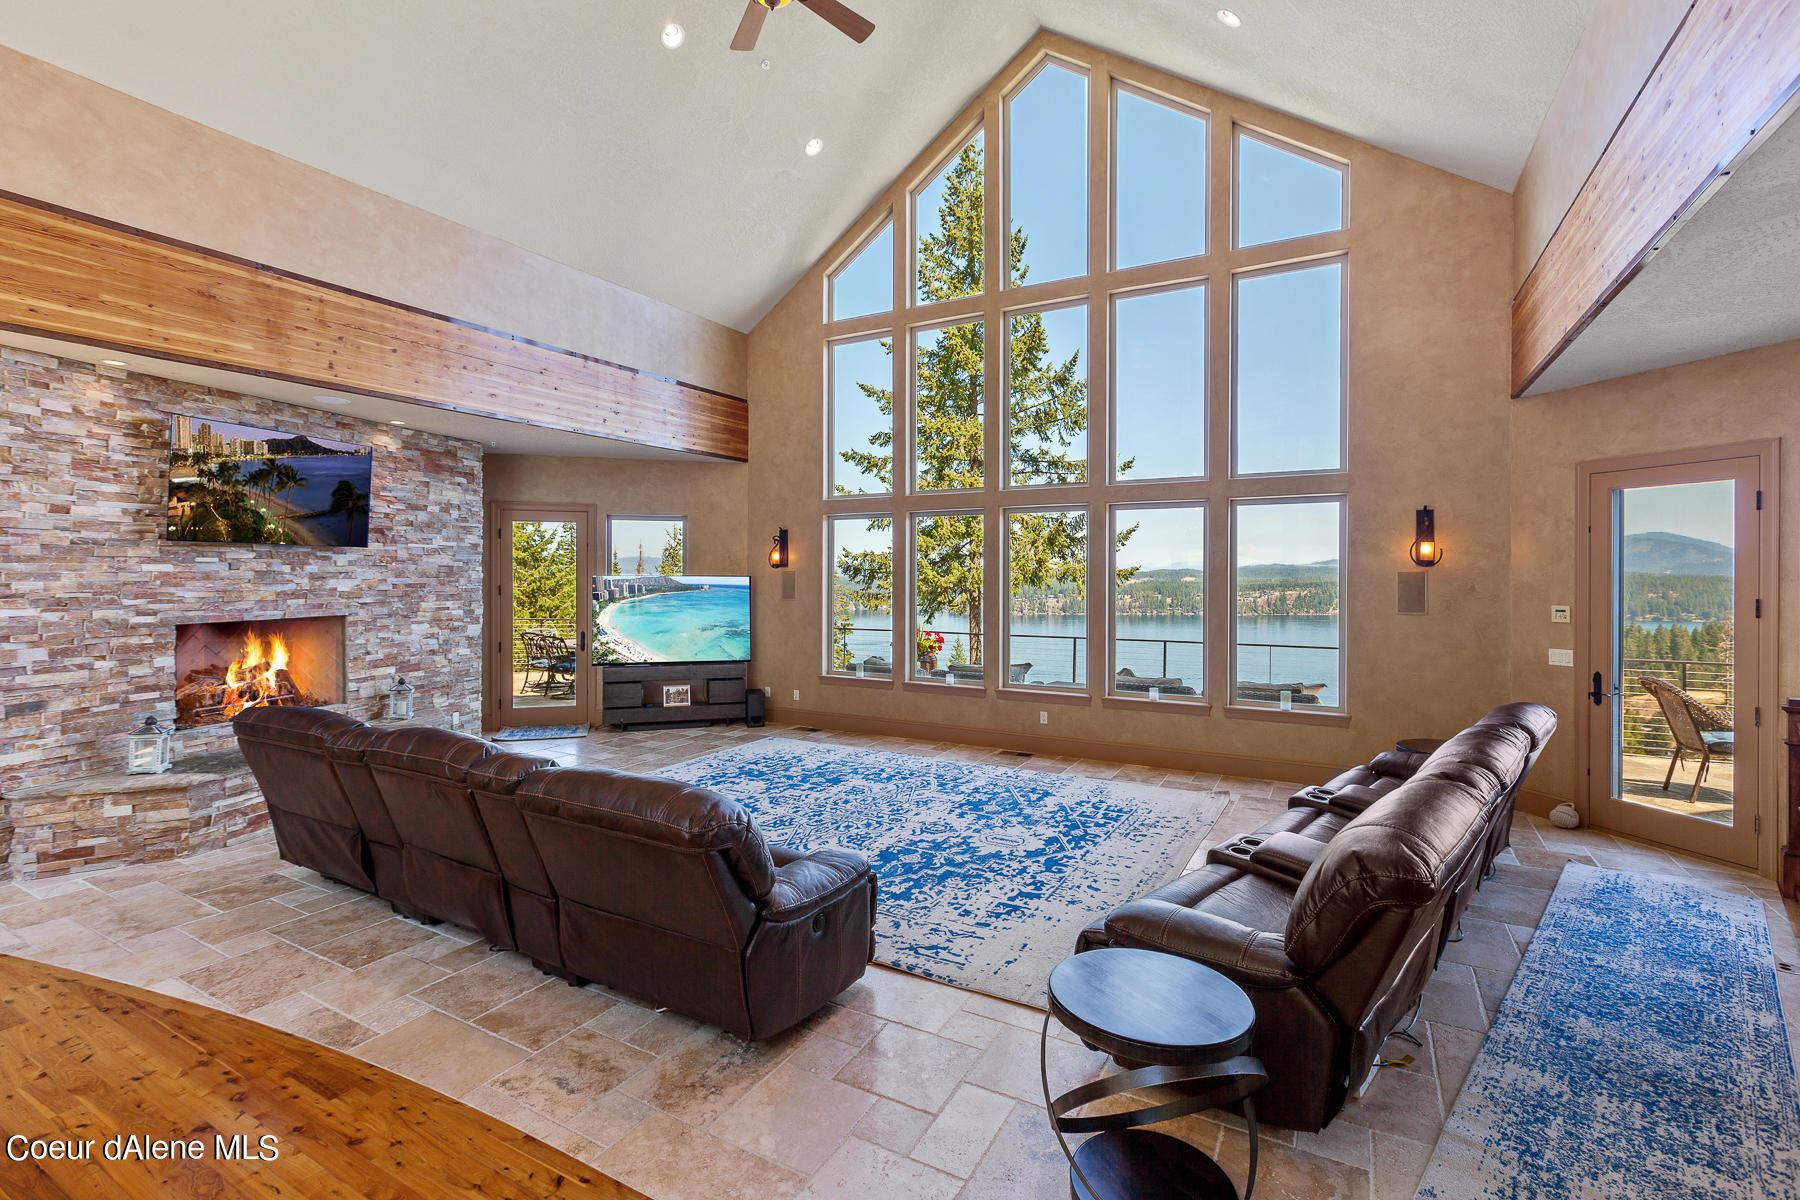 Photo of 3820 E LOOKOUT DR, Coeur dAlene, ID 83815 (MLS # 21-6781)